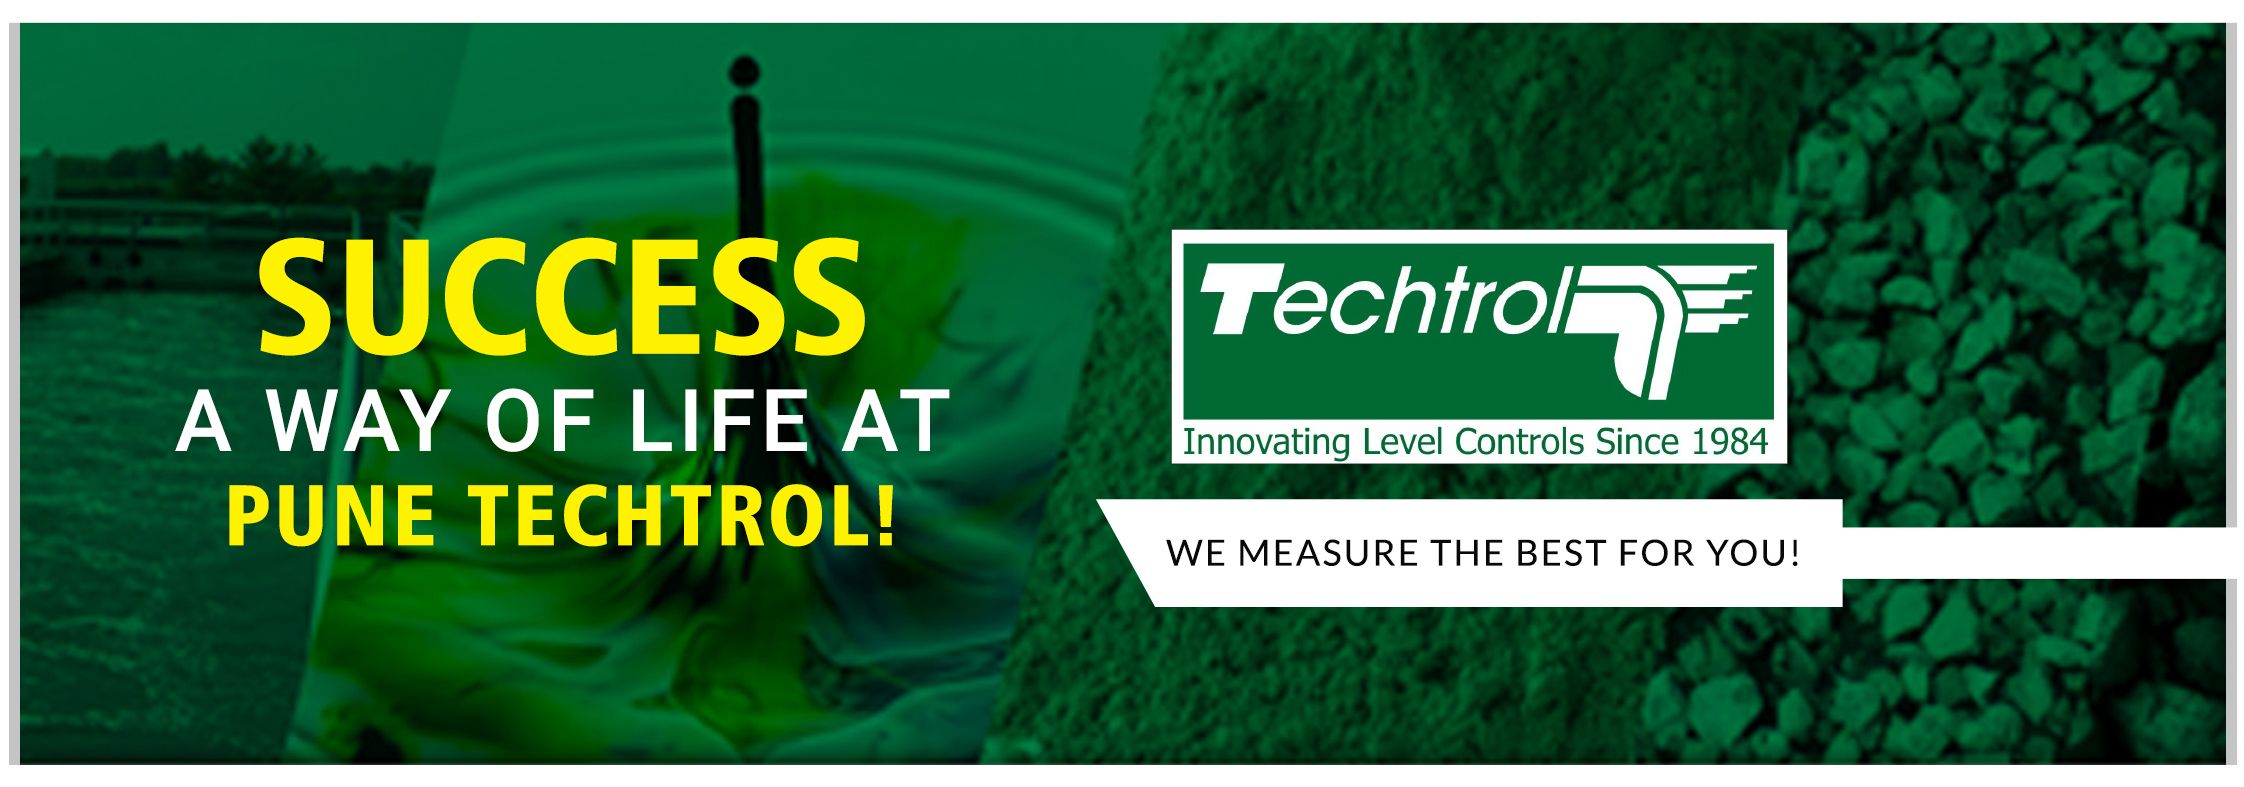 Success A way of life at Pune Techtrol